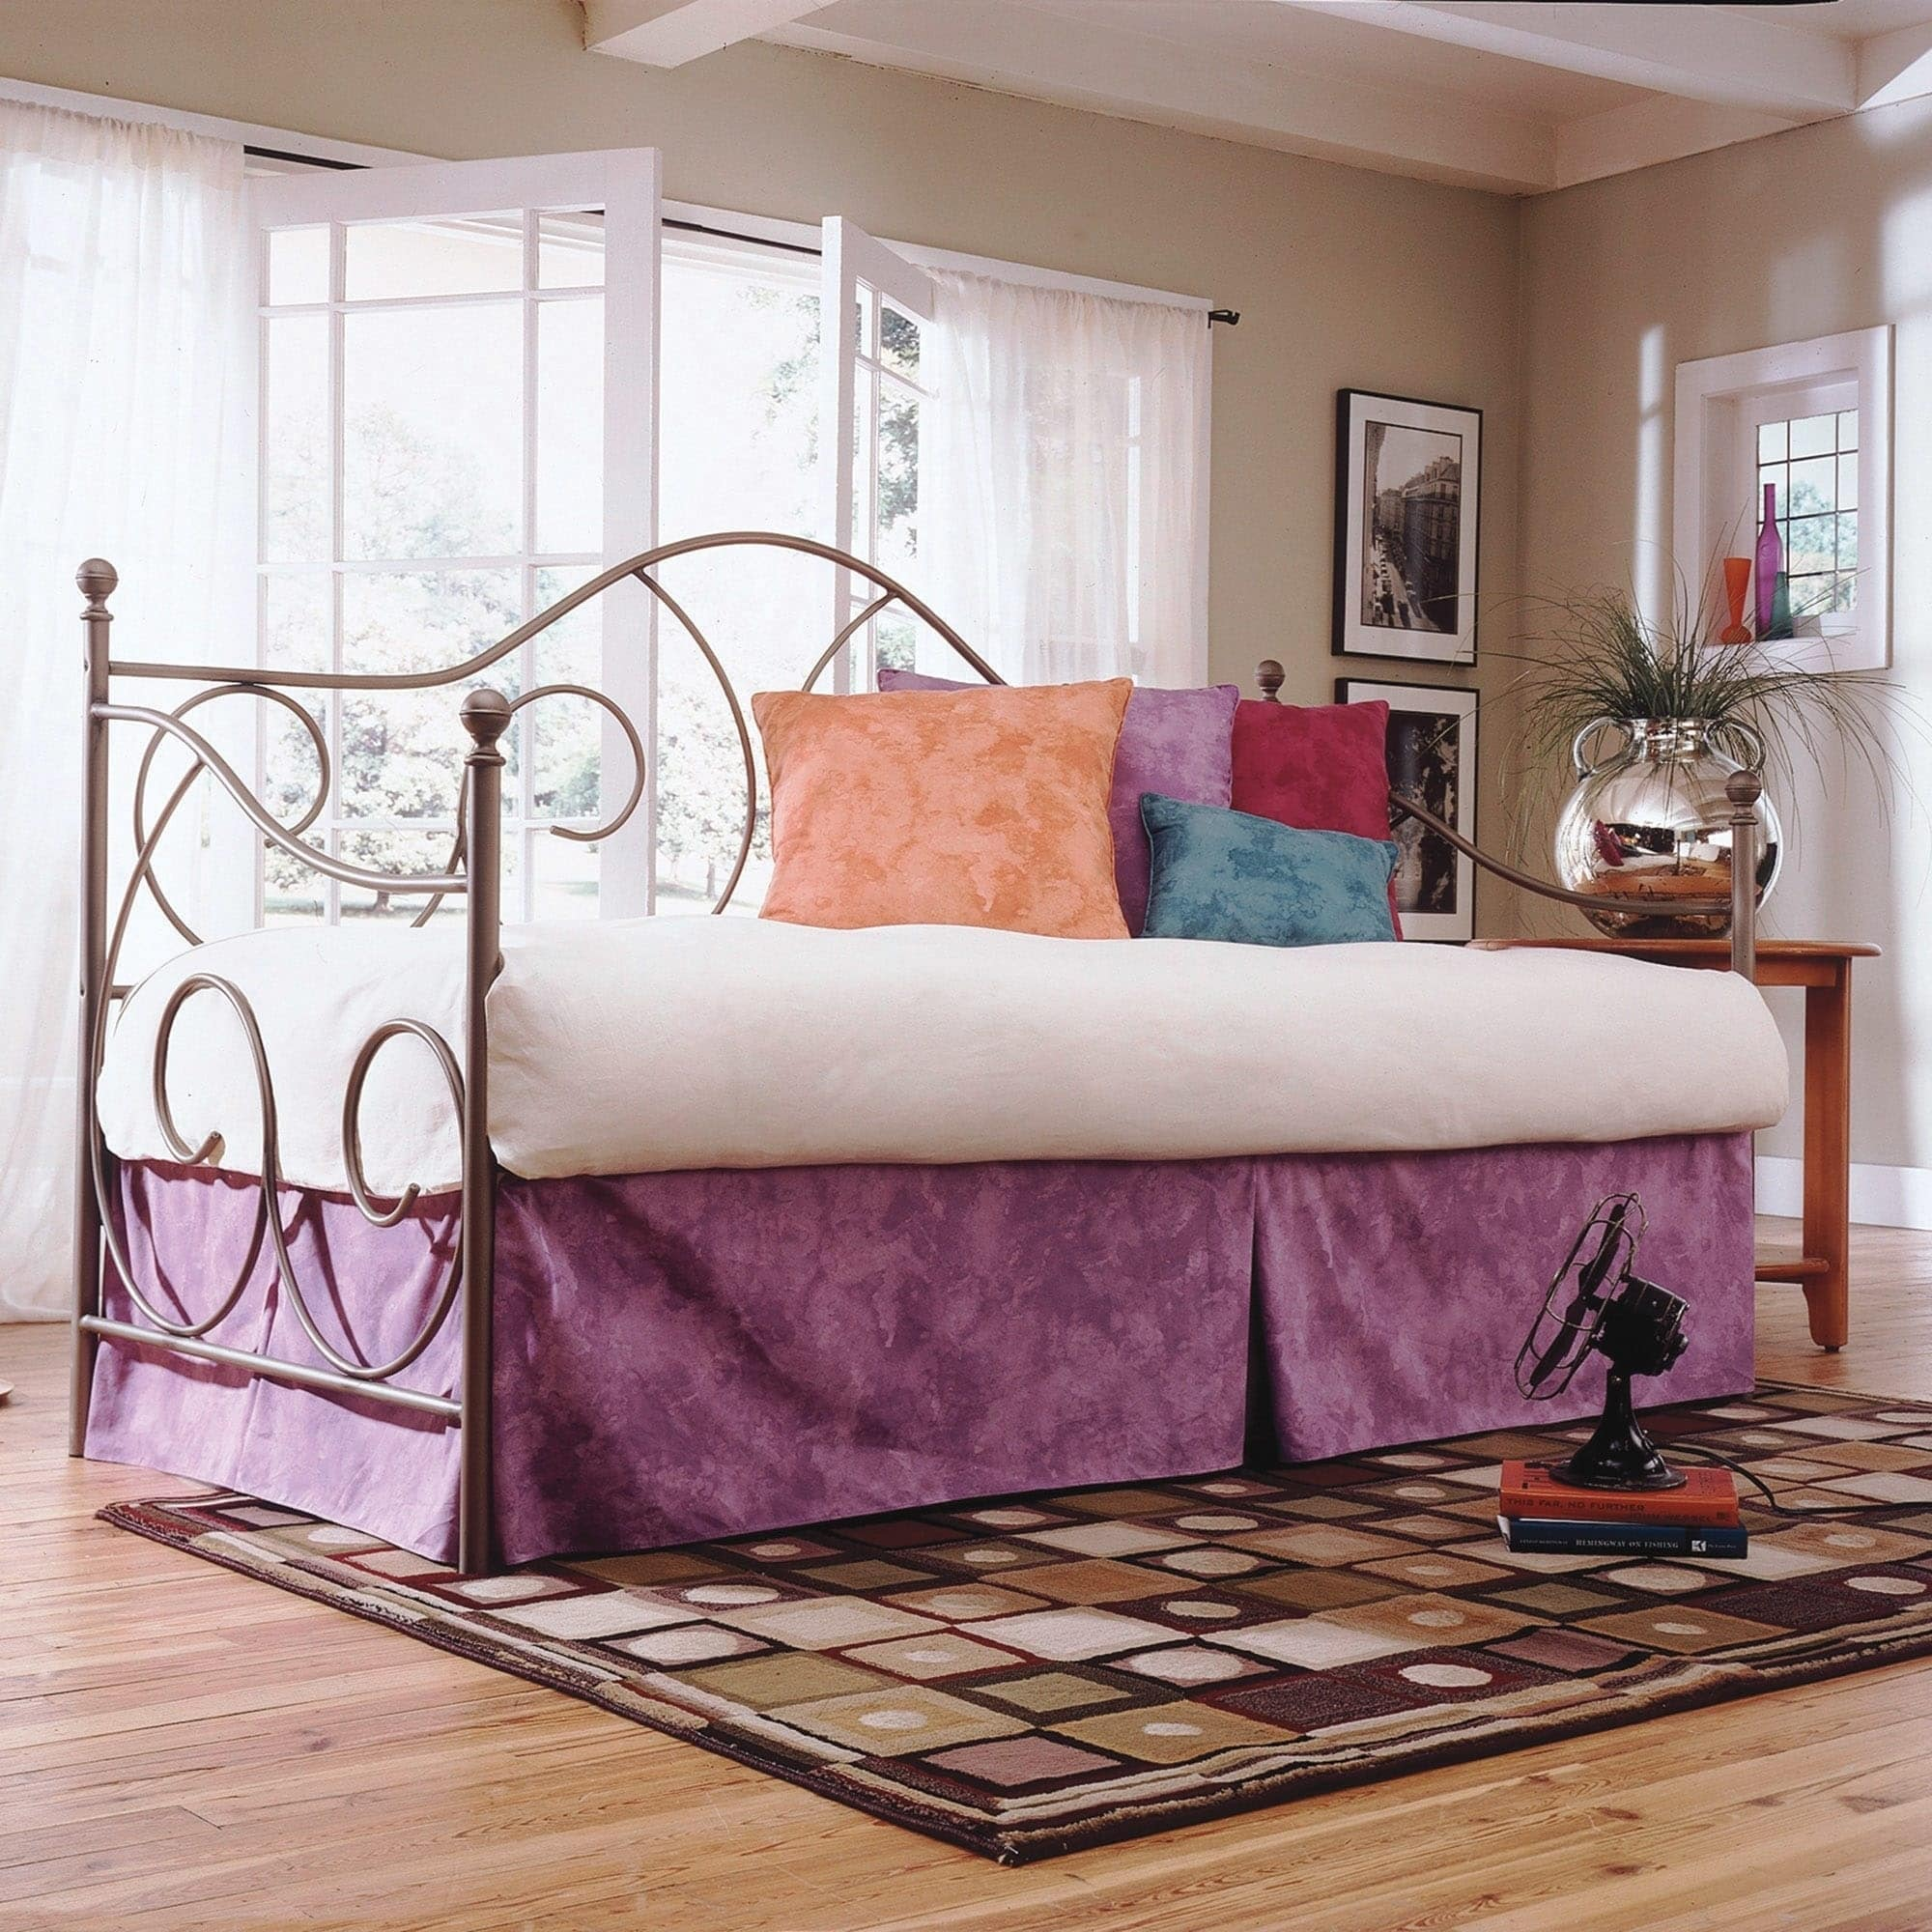 Caroline Complete Metal Day Bed with Euro Top Deck and Trundle Bed Pop-Up Frame, Flint Finish, Twin by Fashion Bed Group